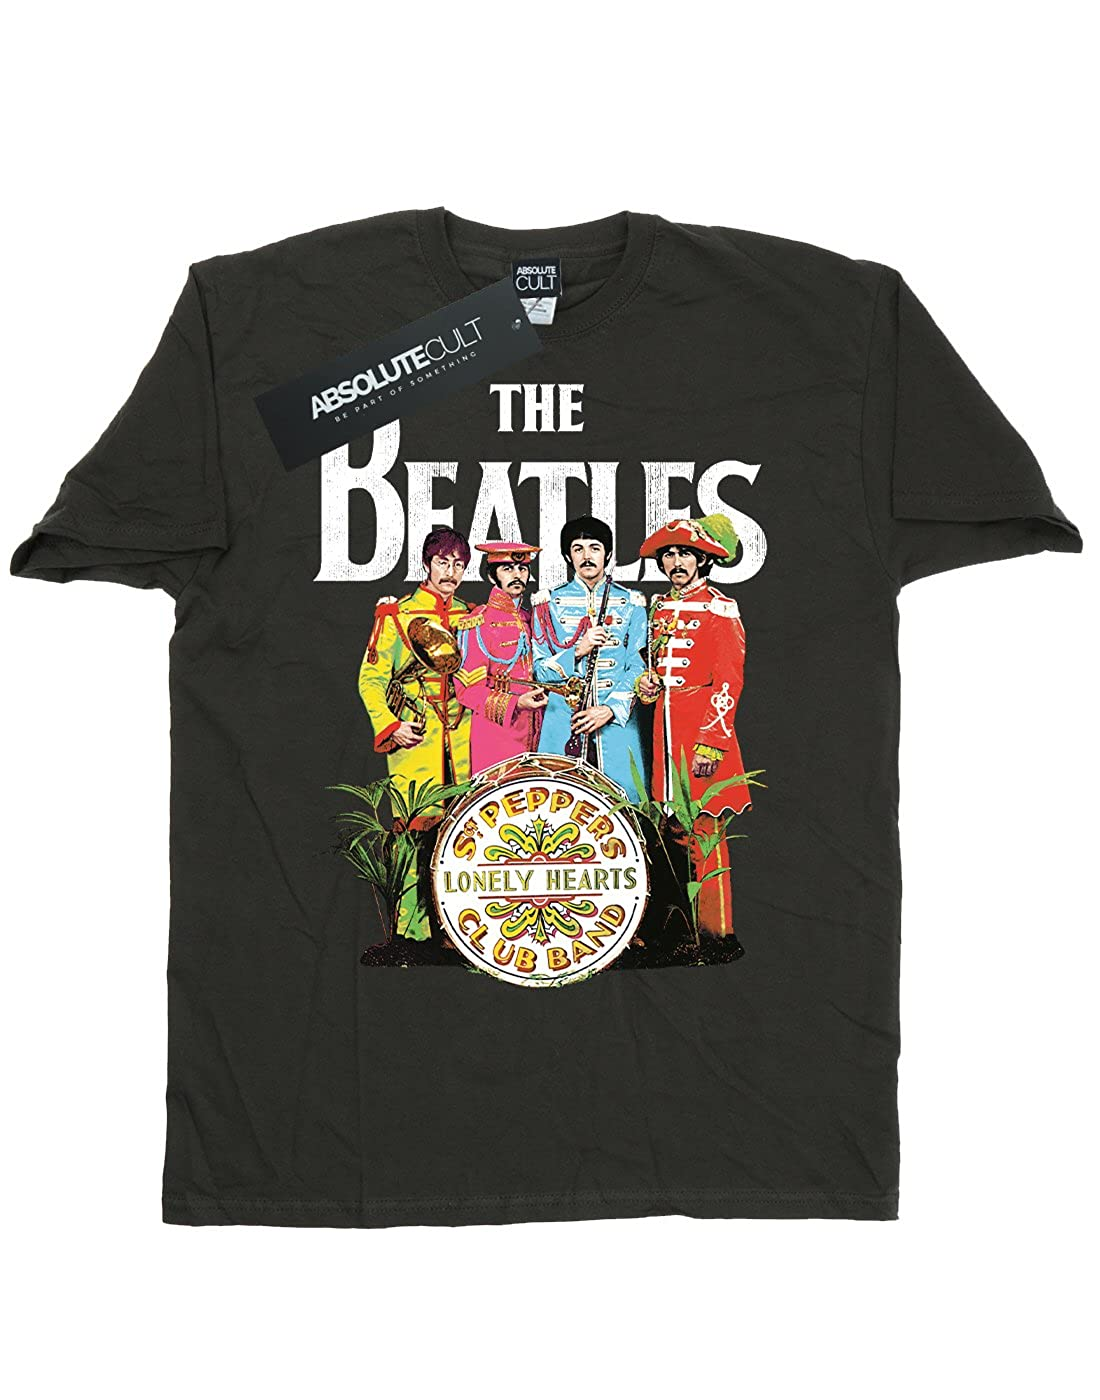 itAbbigliamento Beatles Uomo MagliettaAmazon The Pepper Sgt CtsdBhQrx